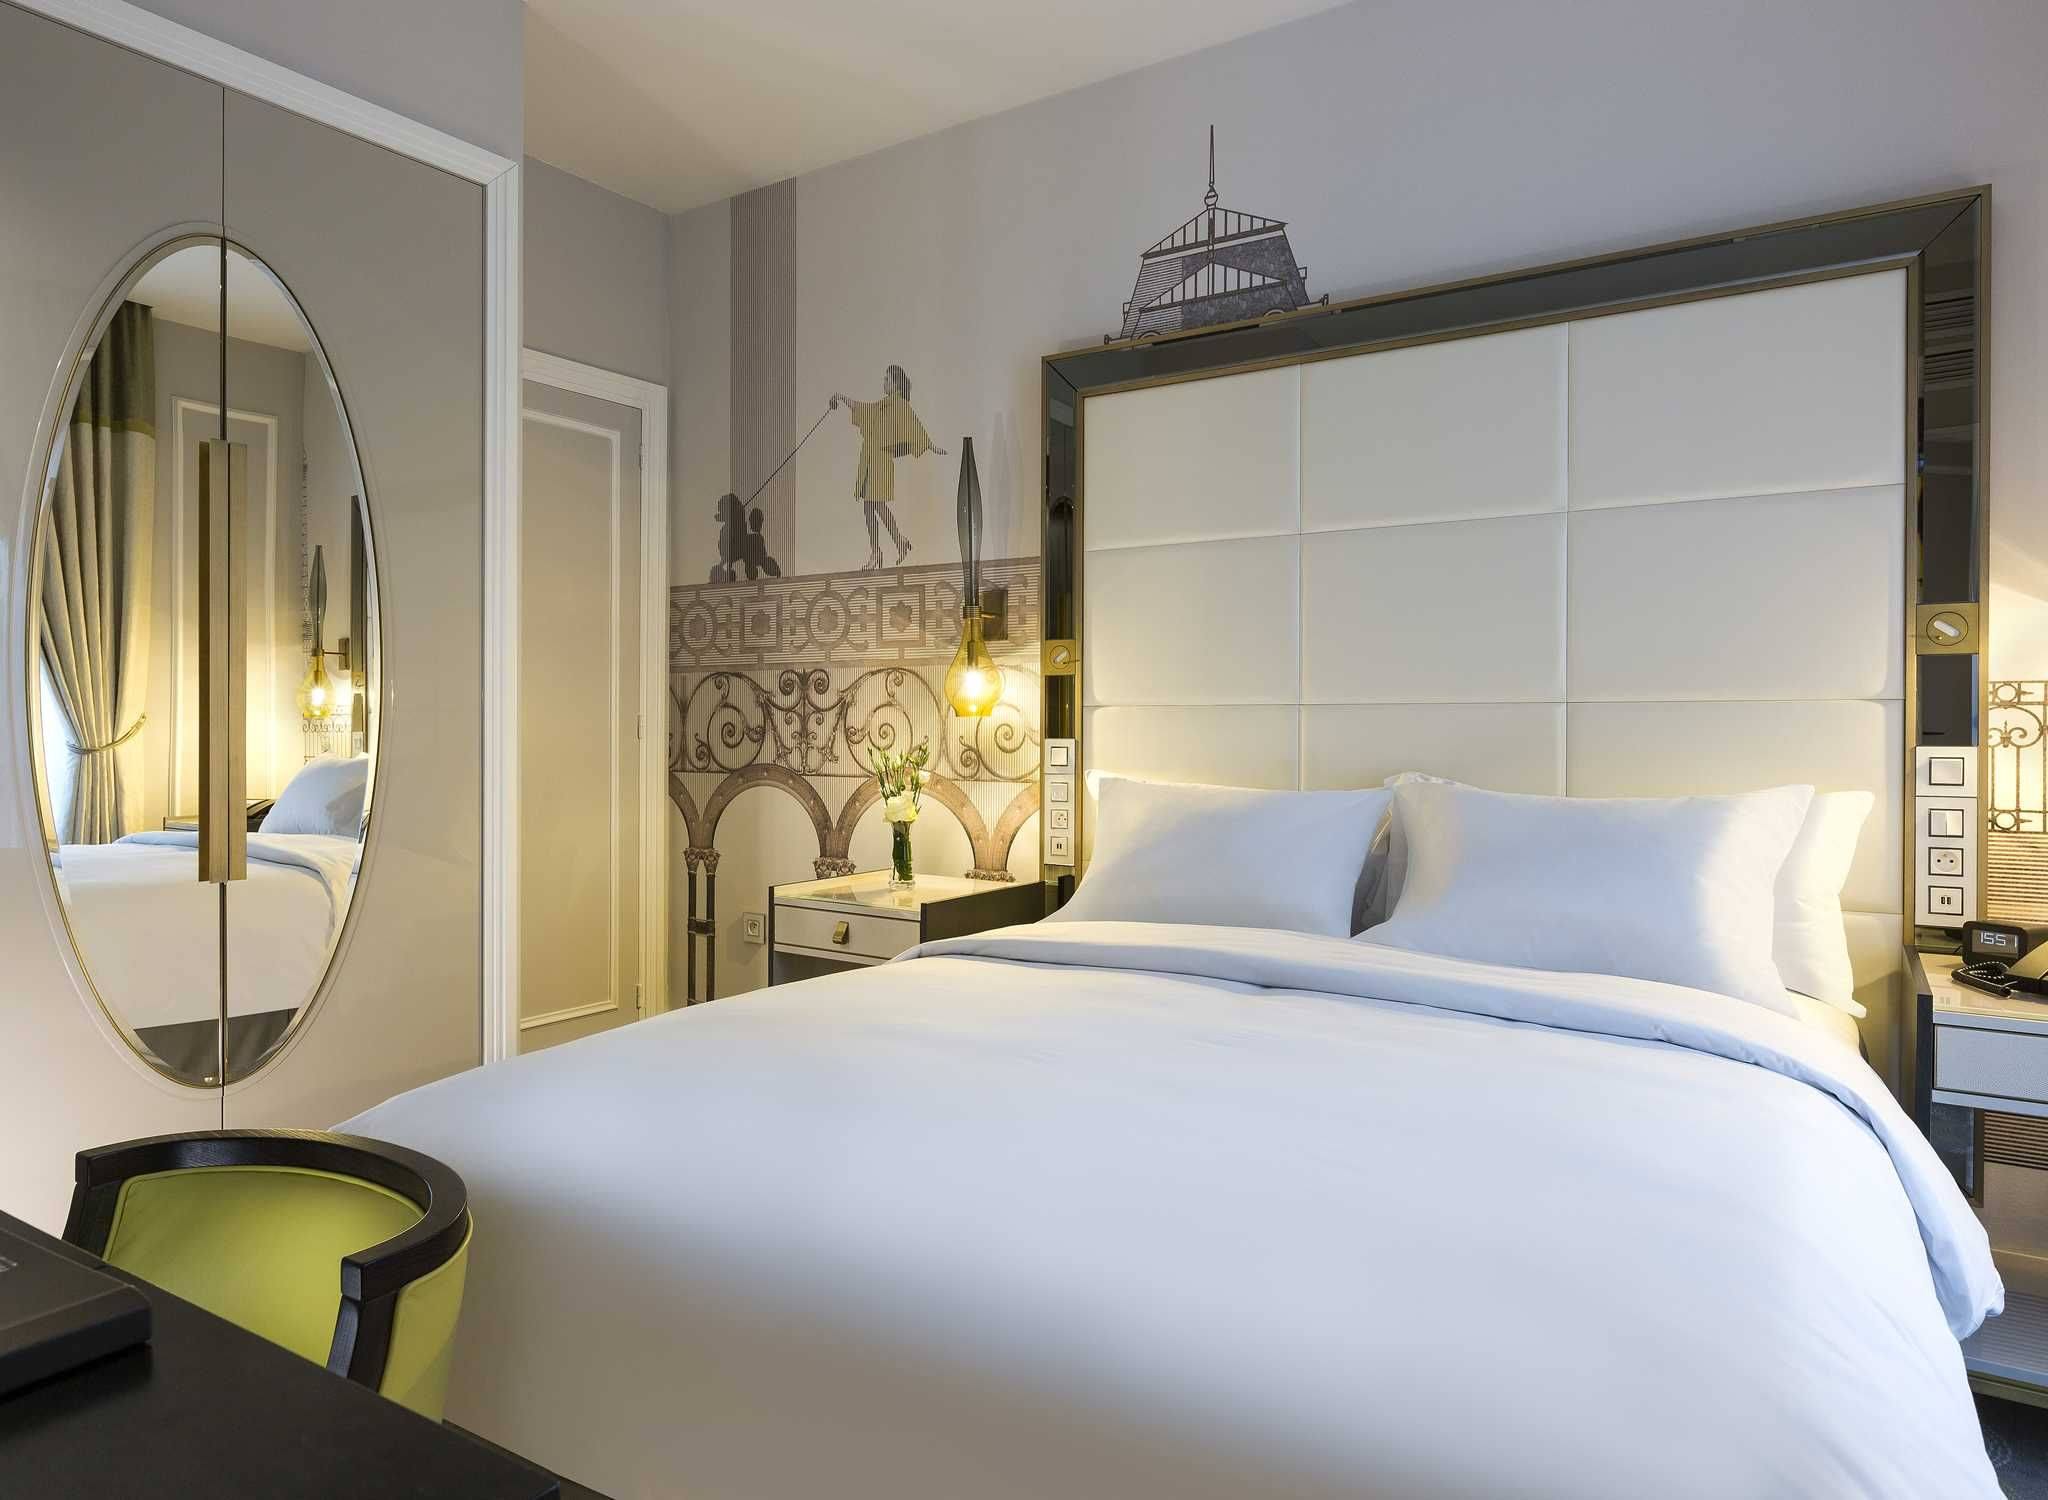 Chambres Une chambre luxueuse